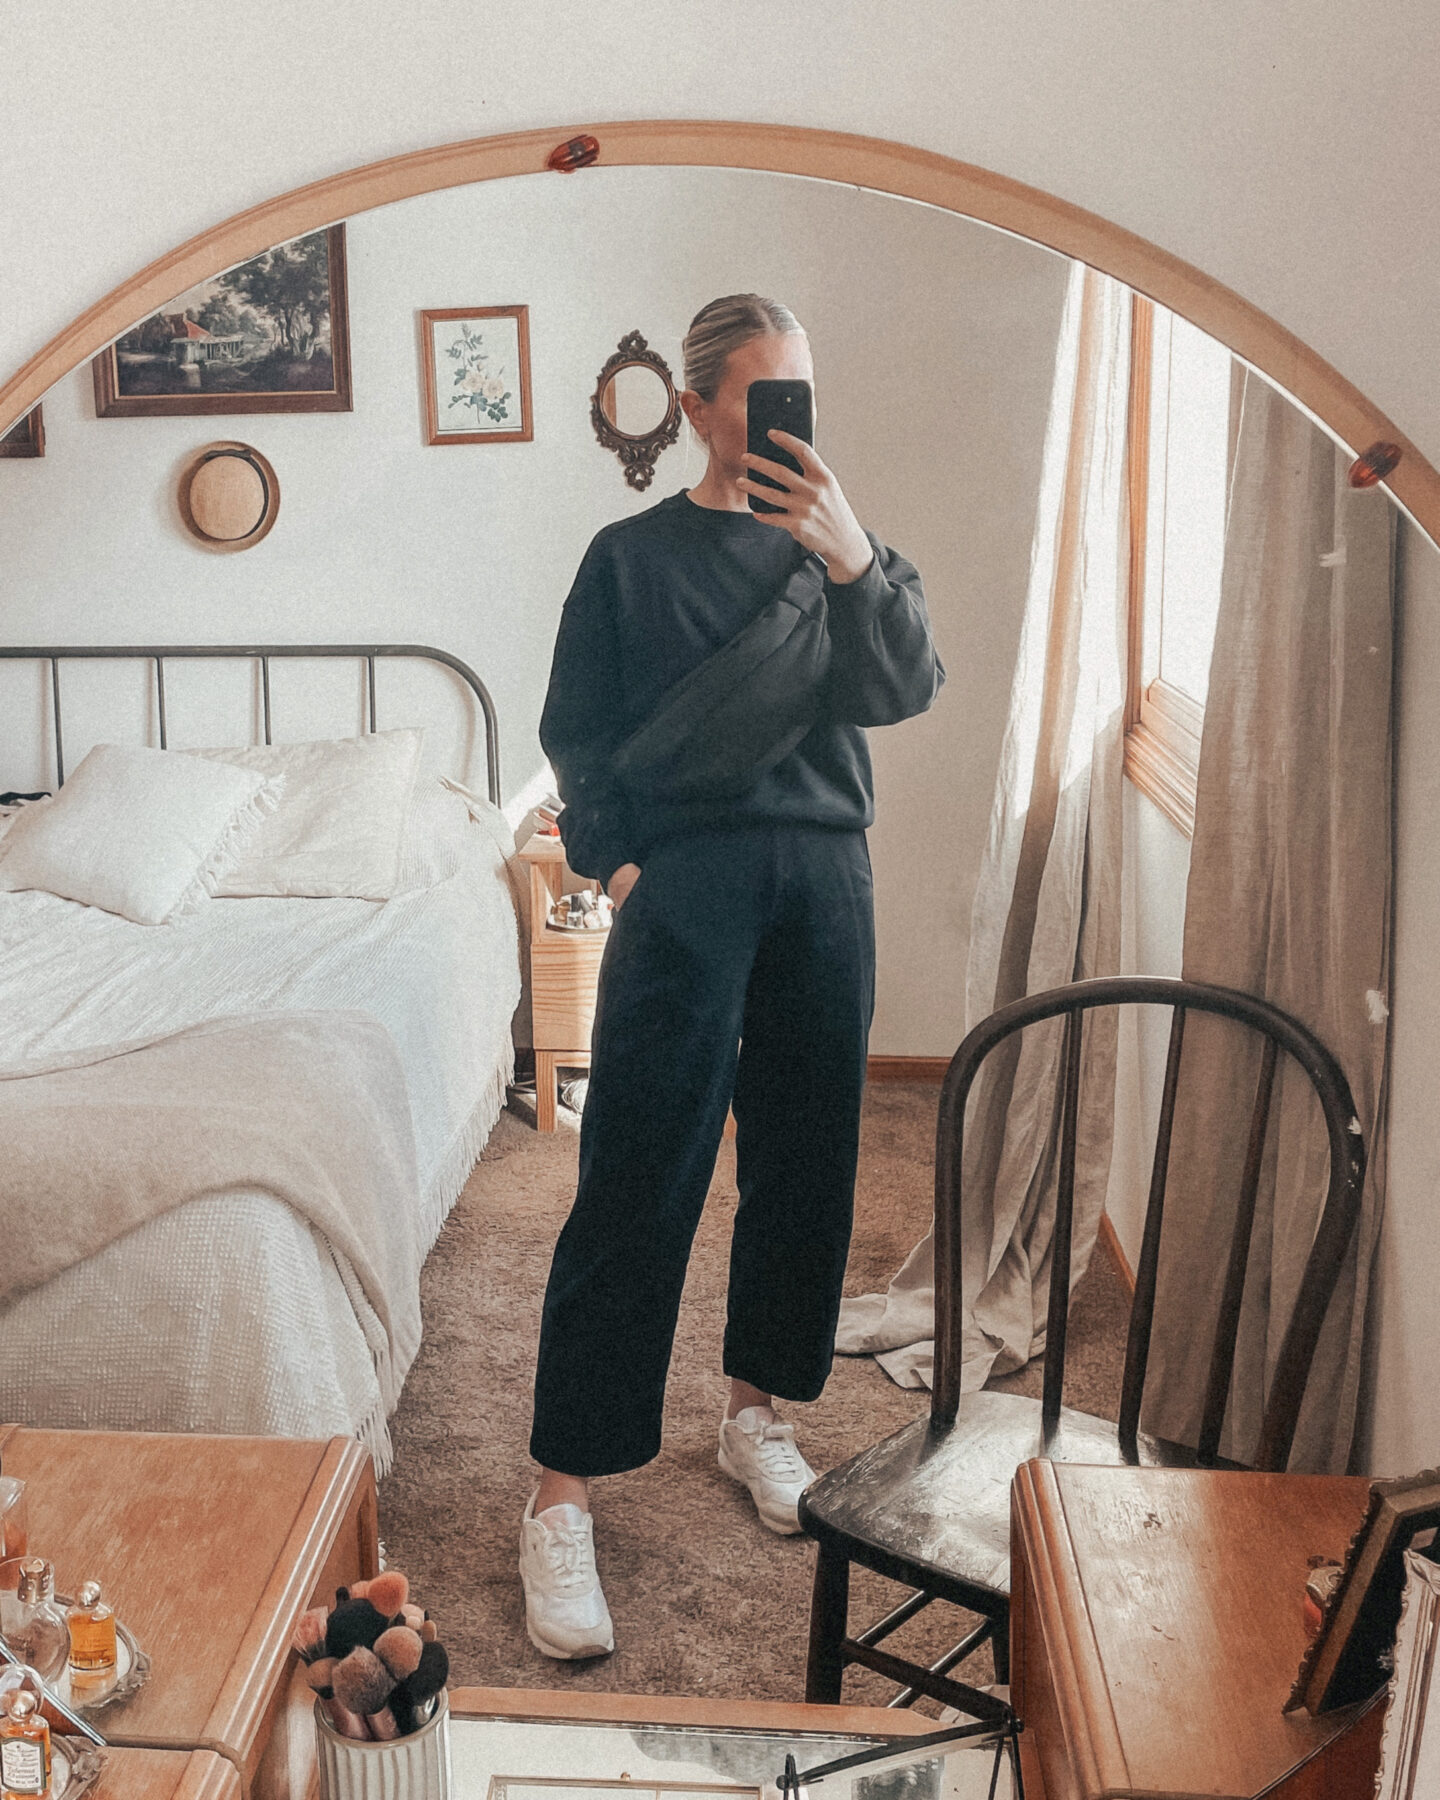 everlane organic track collection, everlane loungewear, lounge set, sweat suit